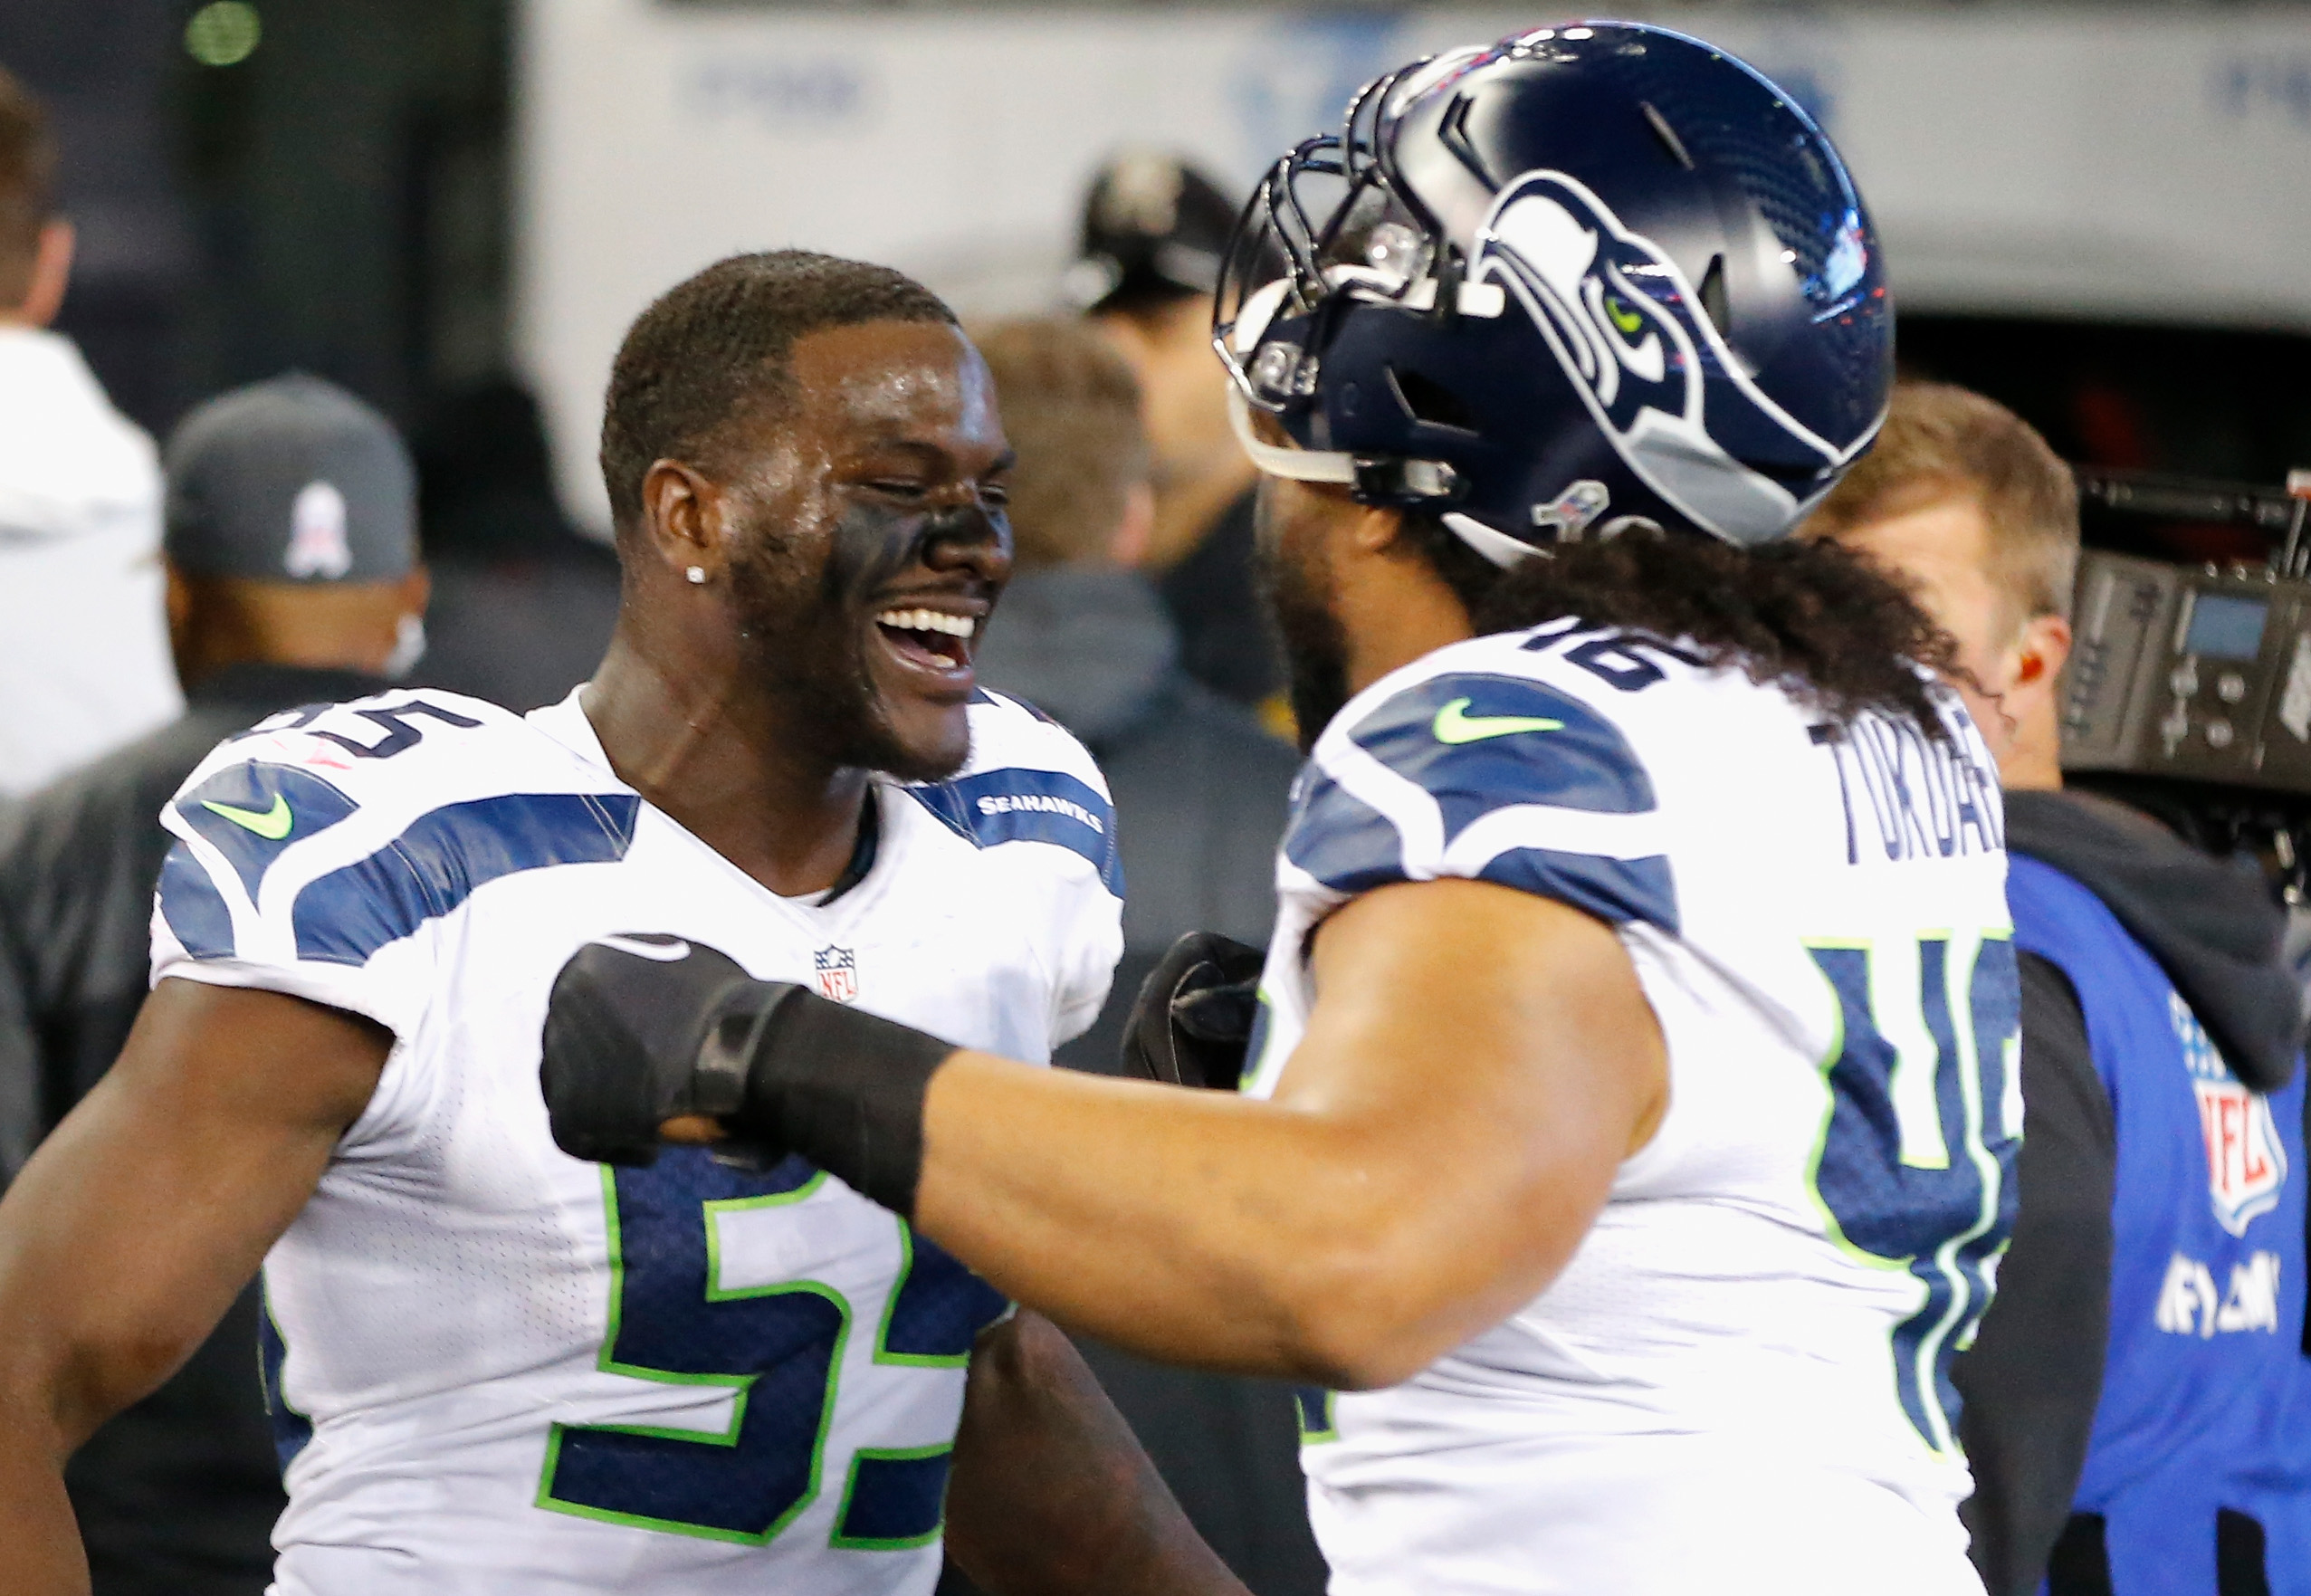 Seahawks Germain Ifedi leaves training camp bloo d after fight